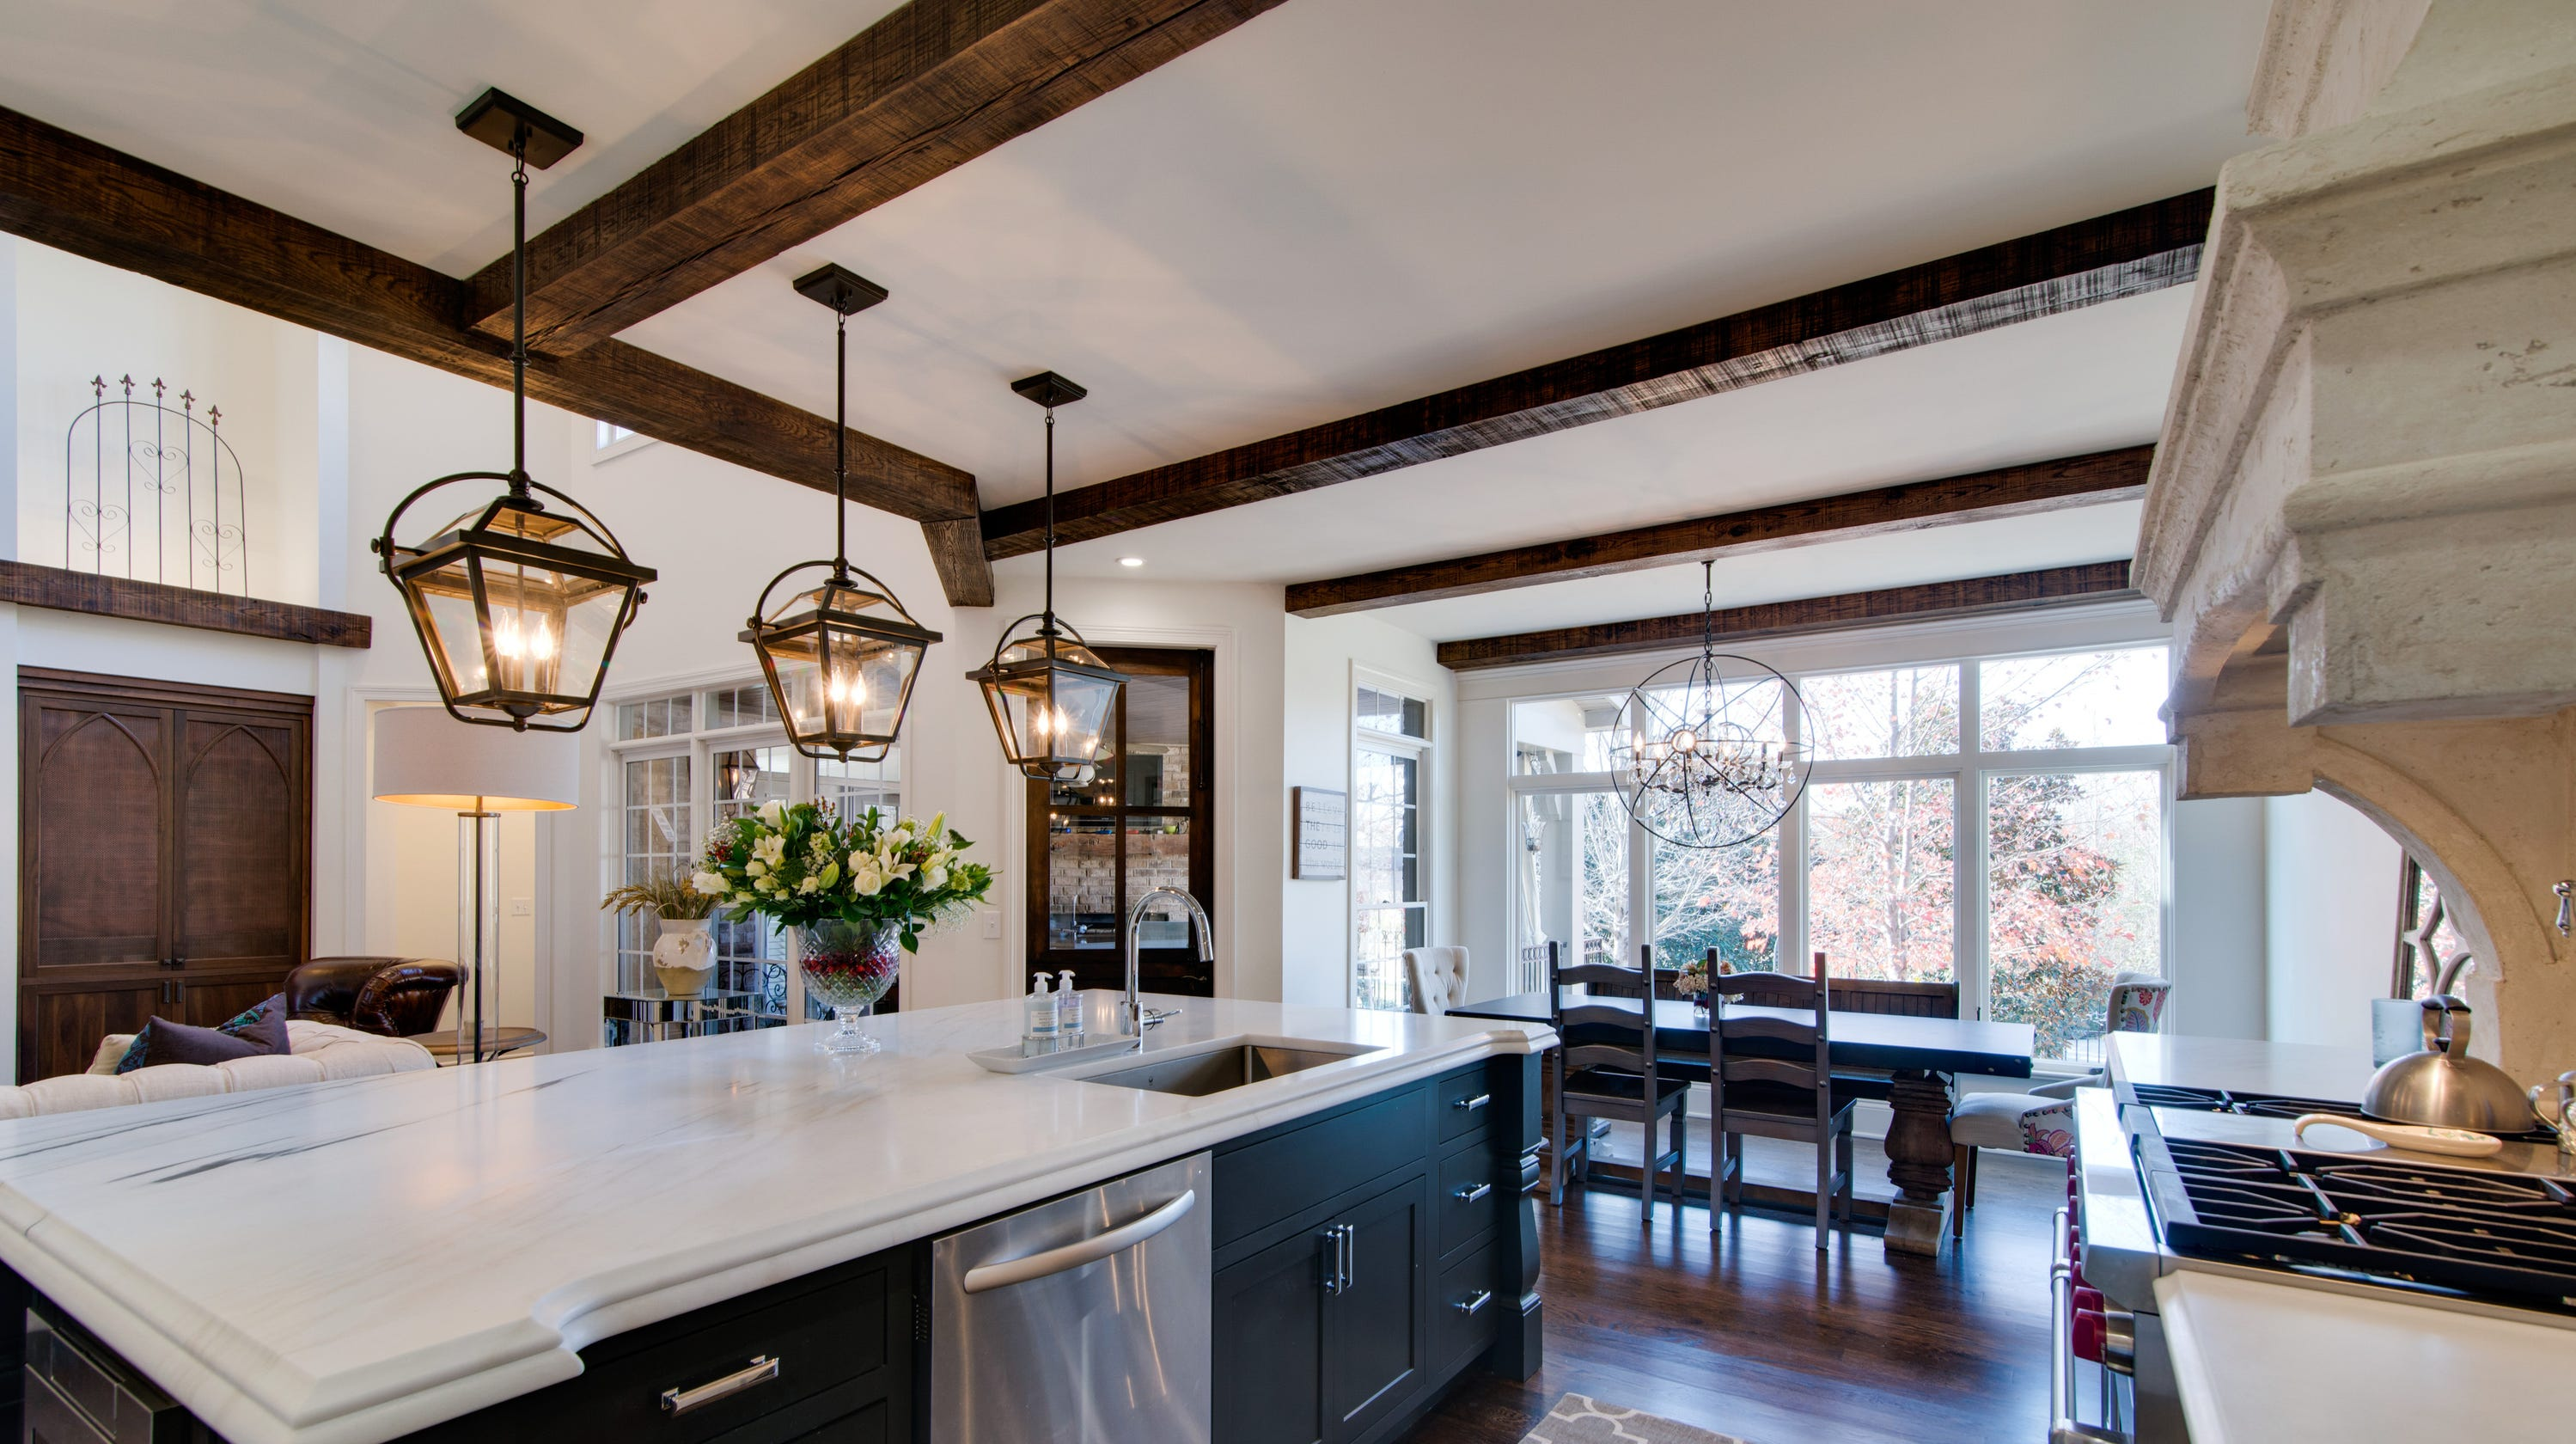 Realtor Shares Tips On Making Home Upgrades That Add Value